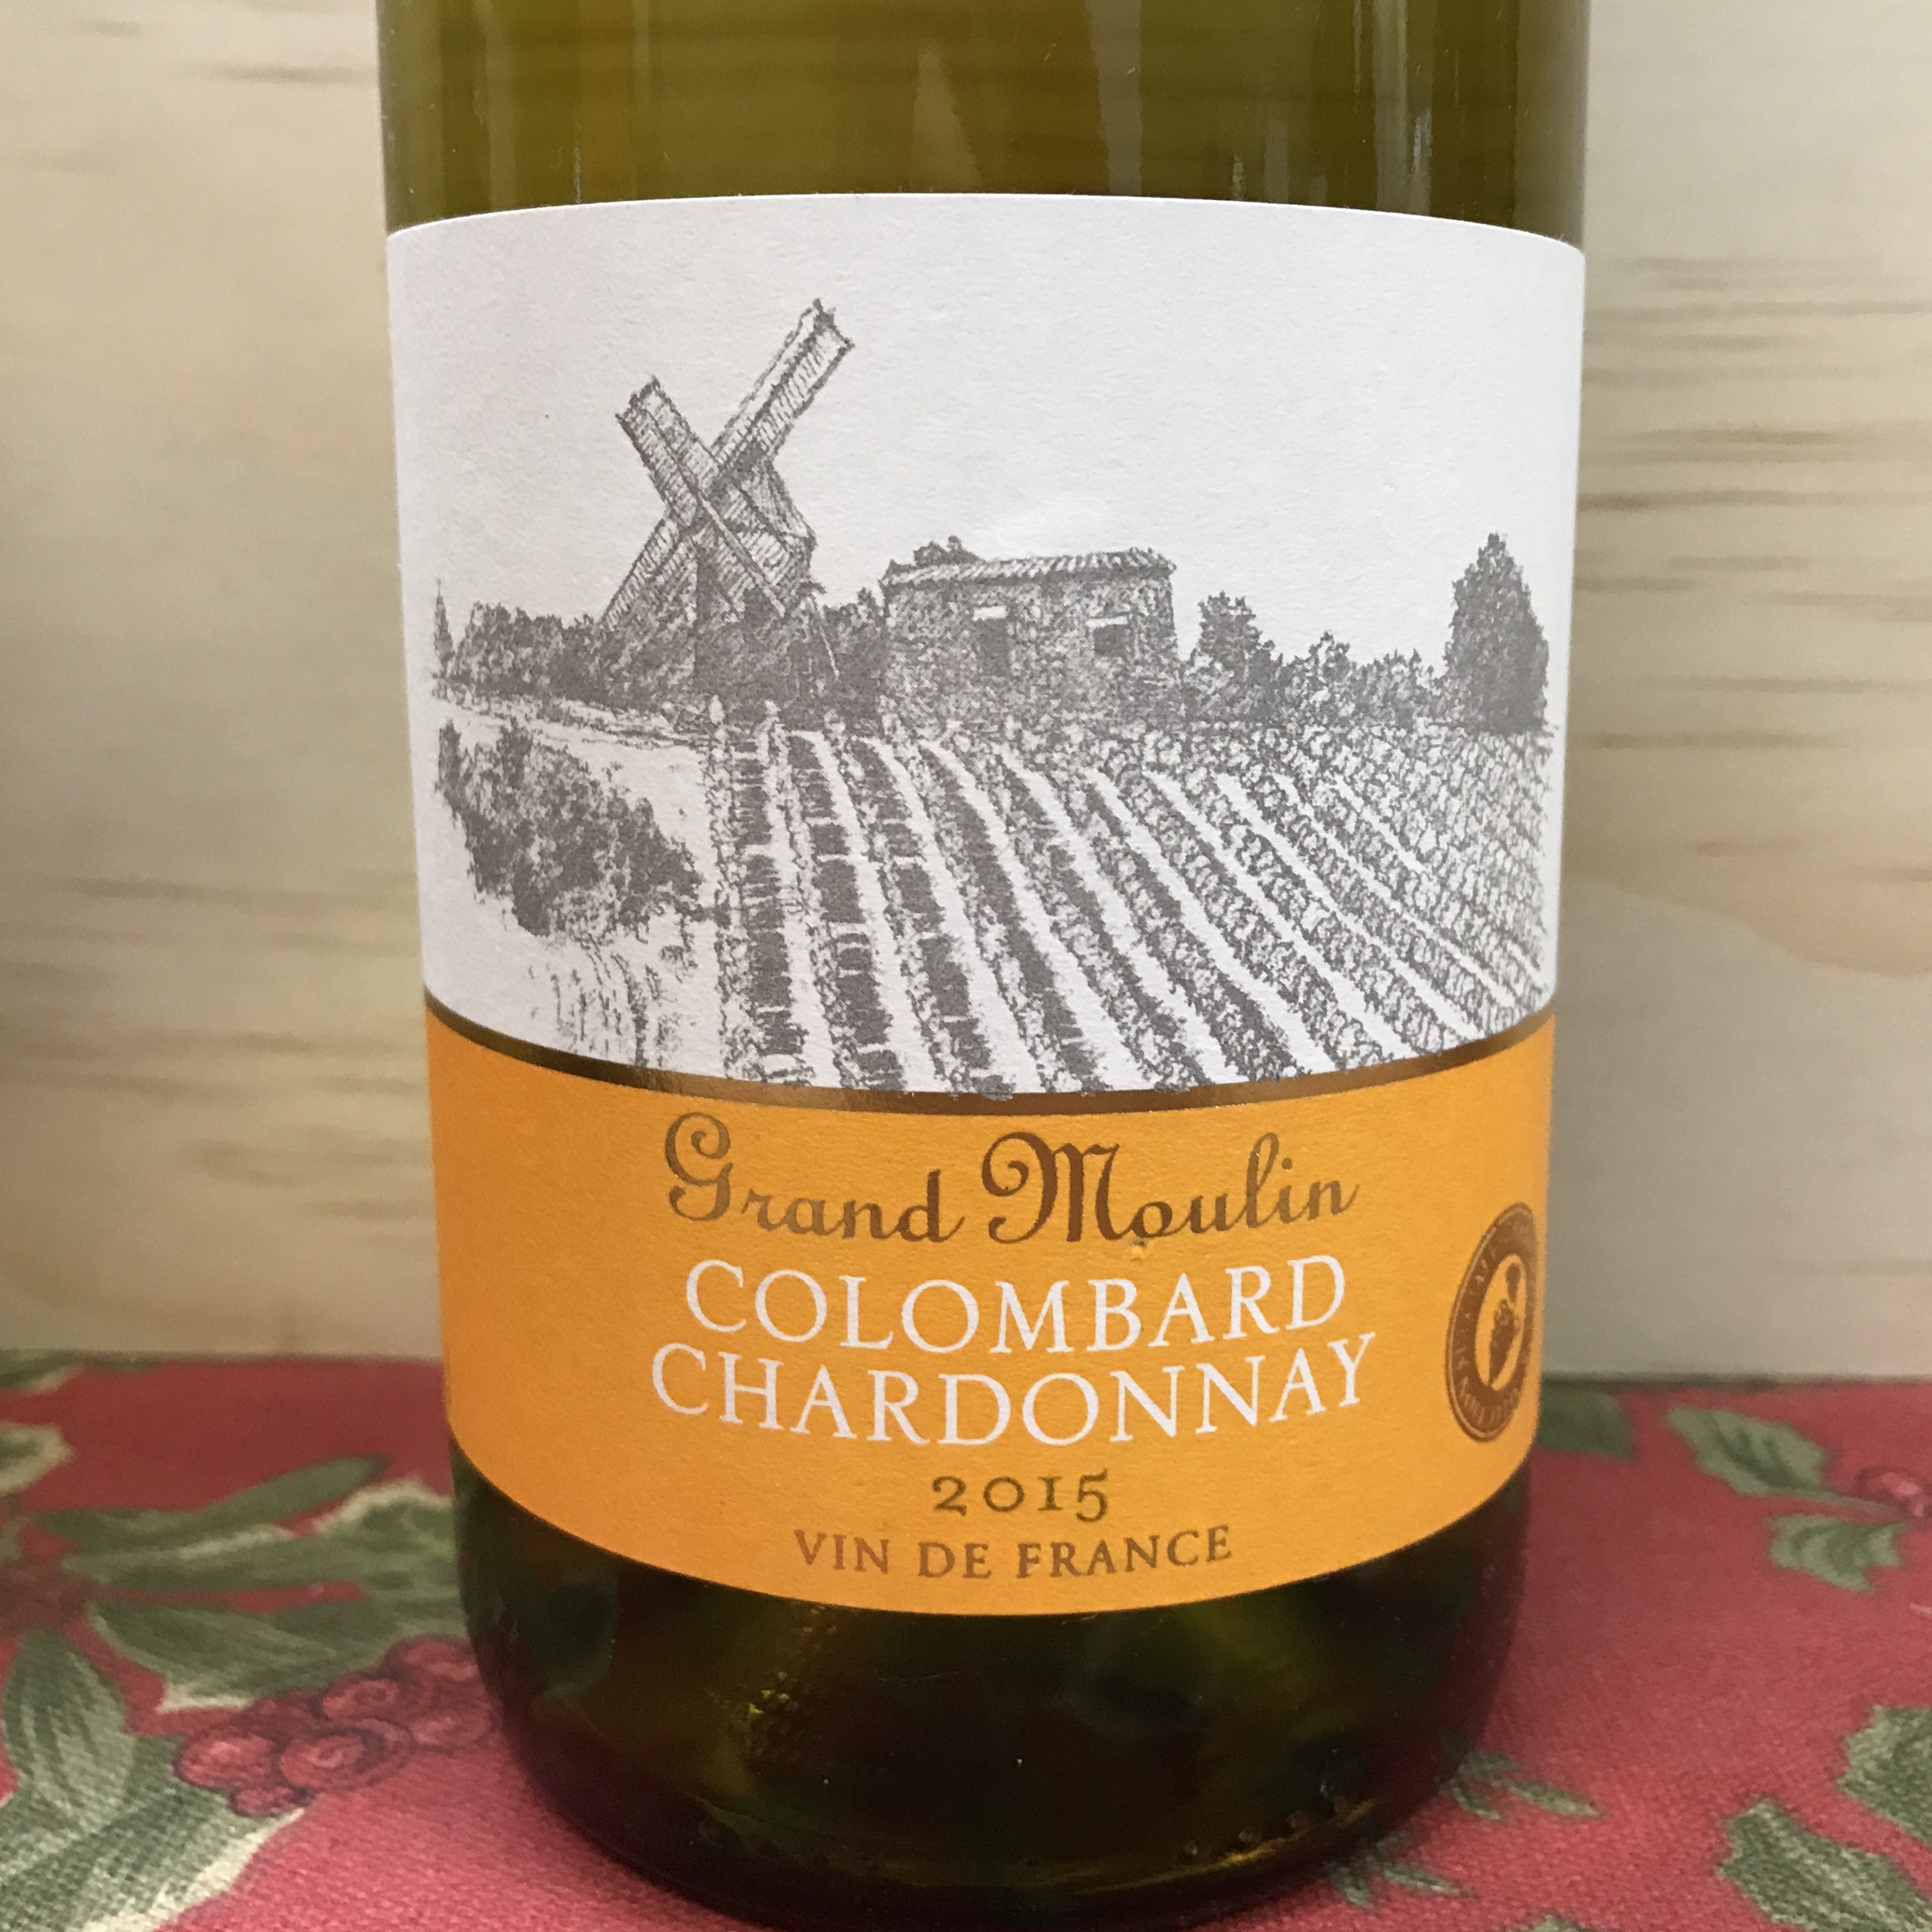 Grand Moulin Colombard Chardonnay 2015